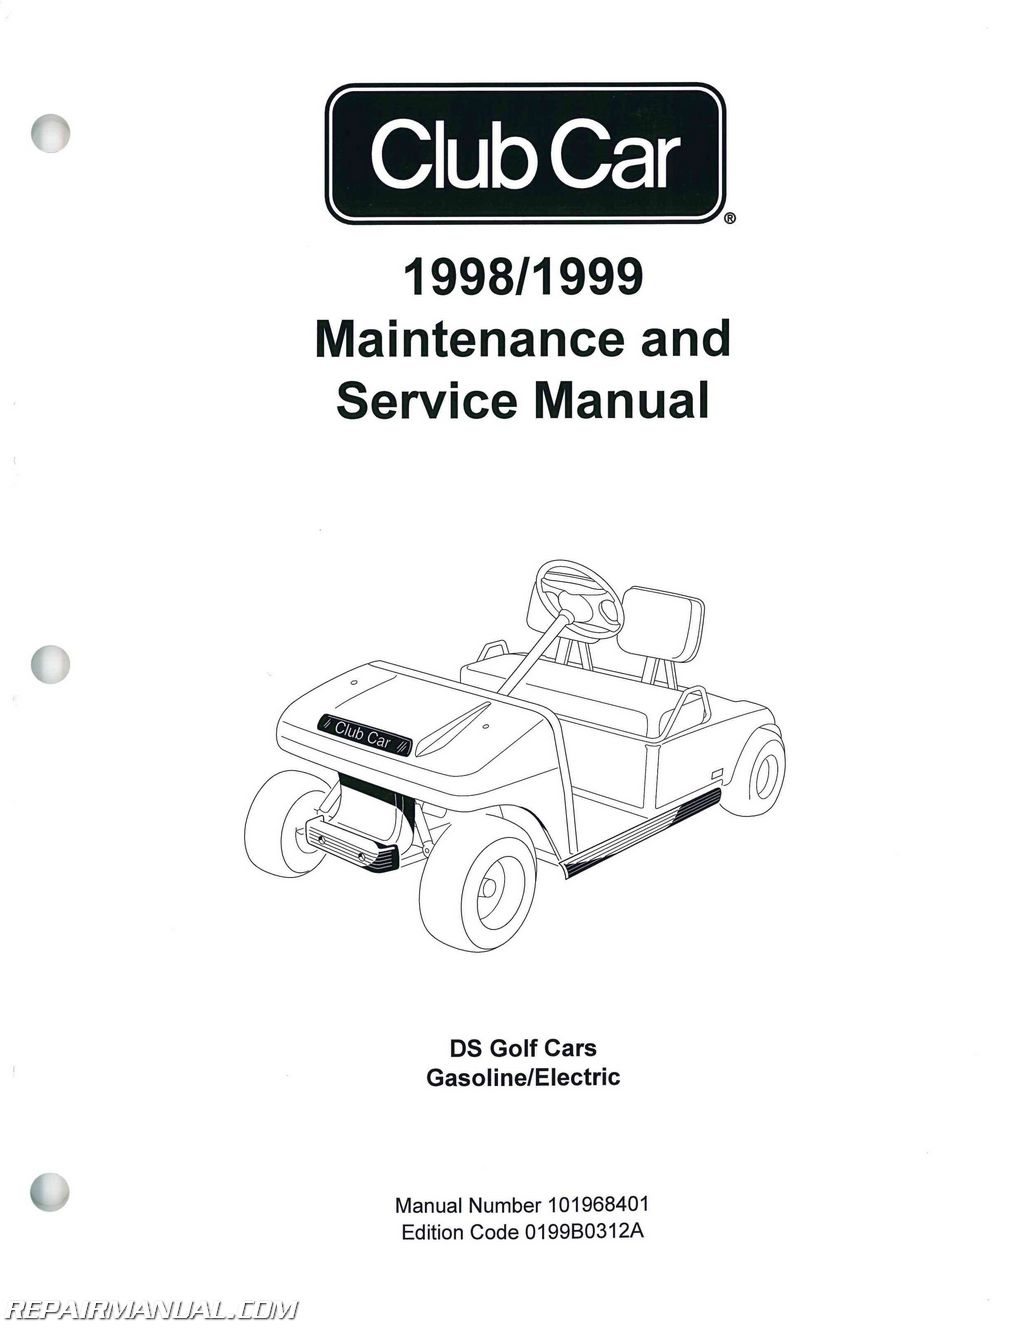 1998 1999 club car ds golf car service manual rh repairmanual com